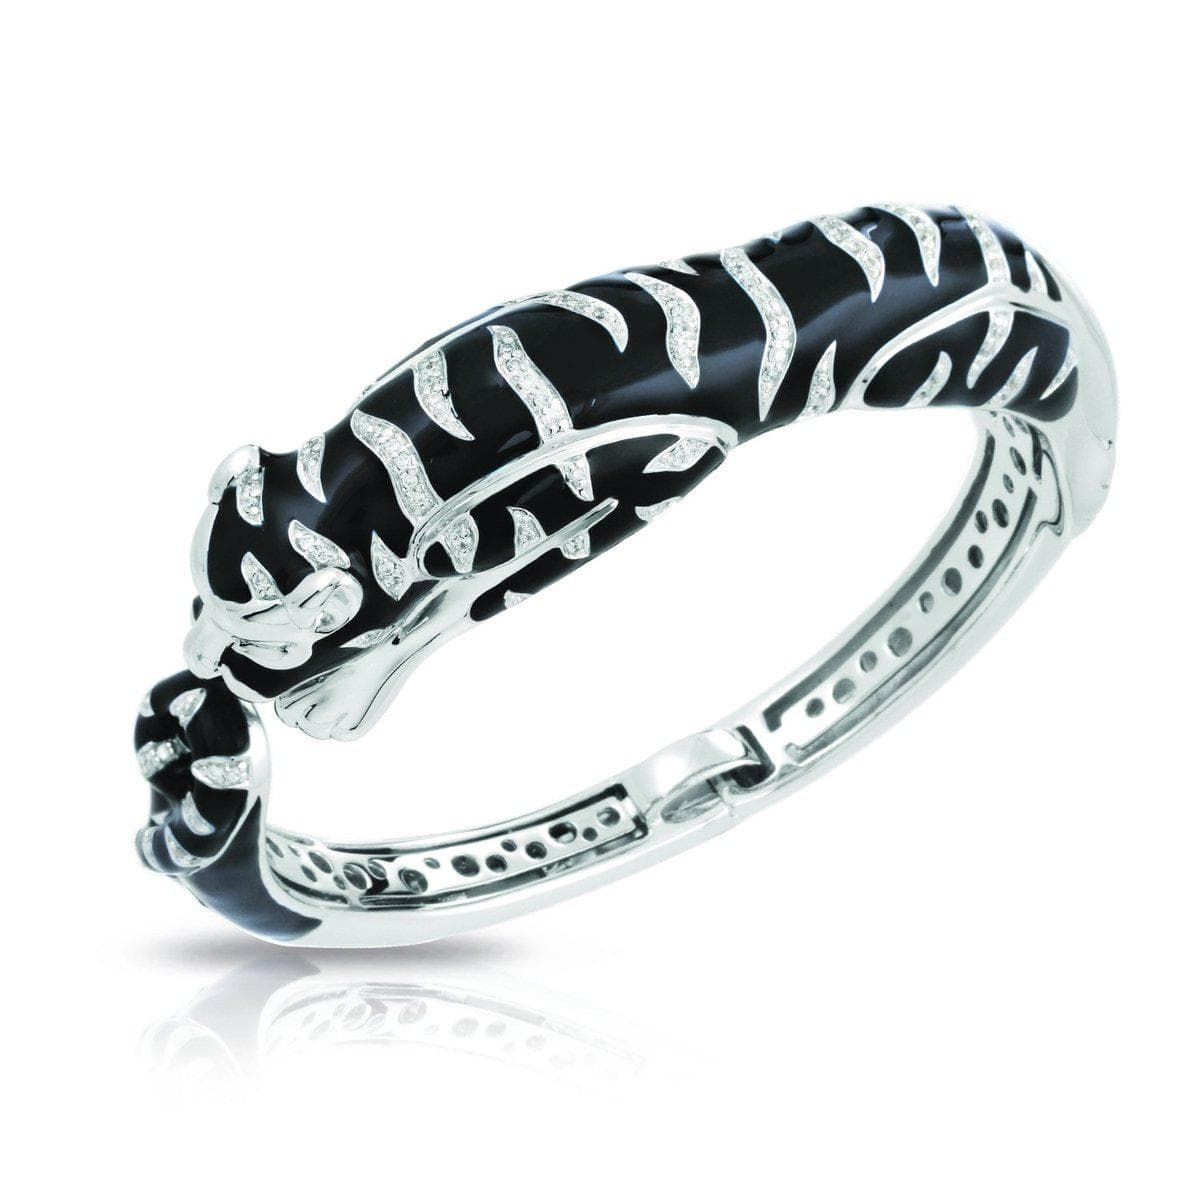 Tigre Black Bangle-Belle Etoile-Renee Taylor Gallery